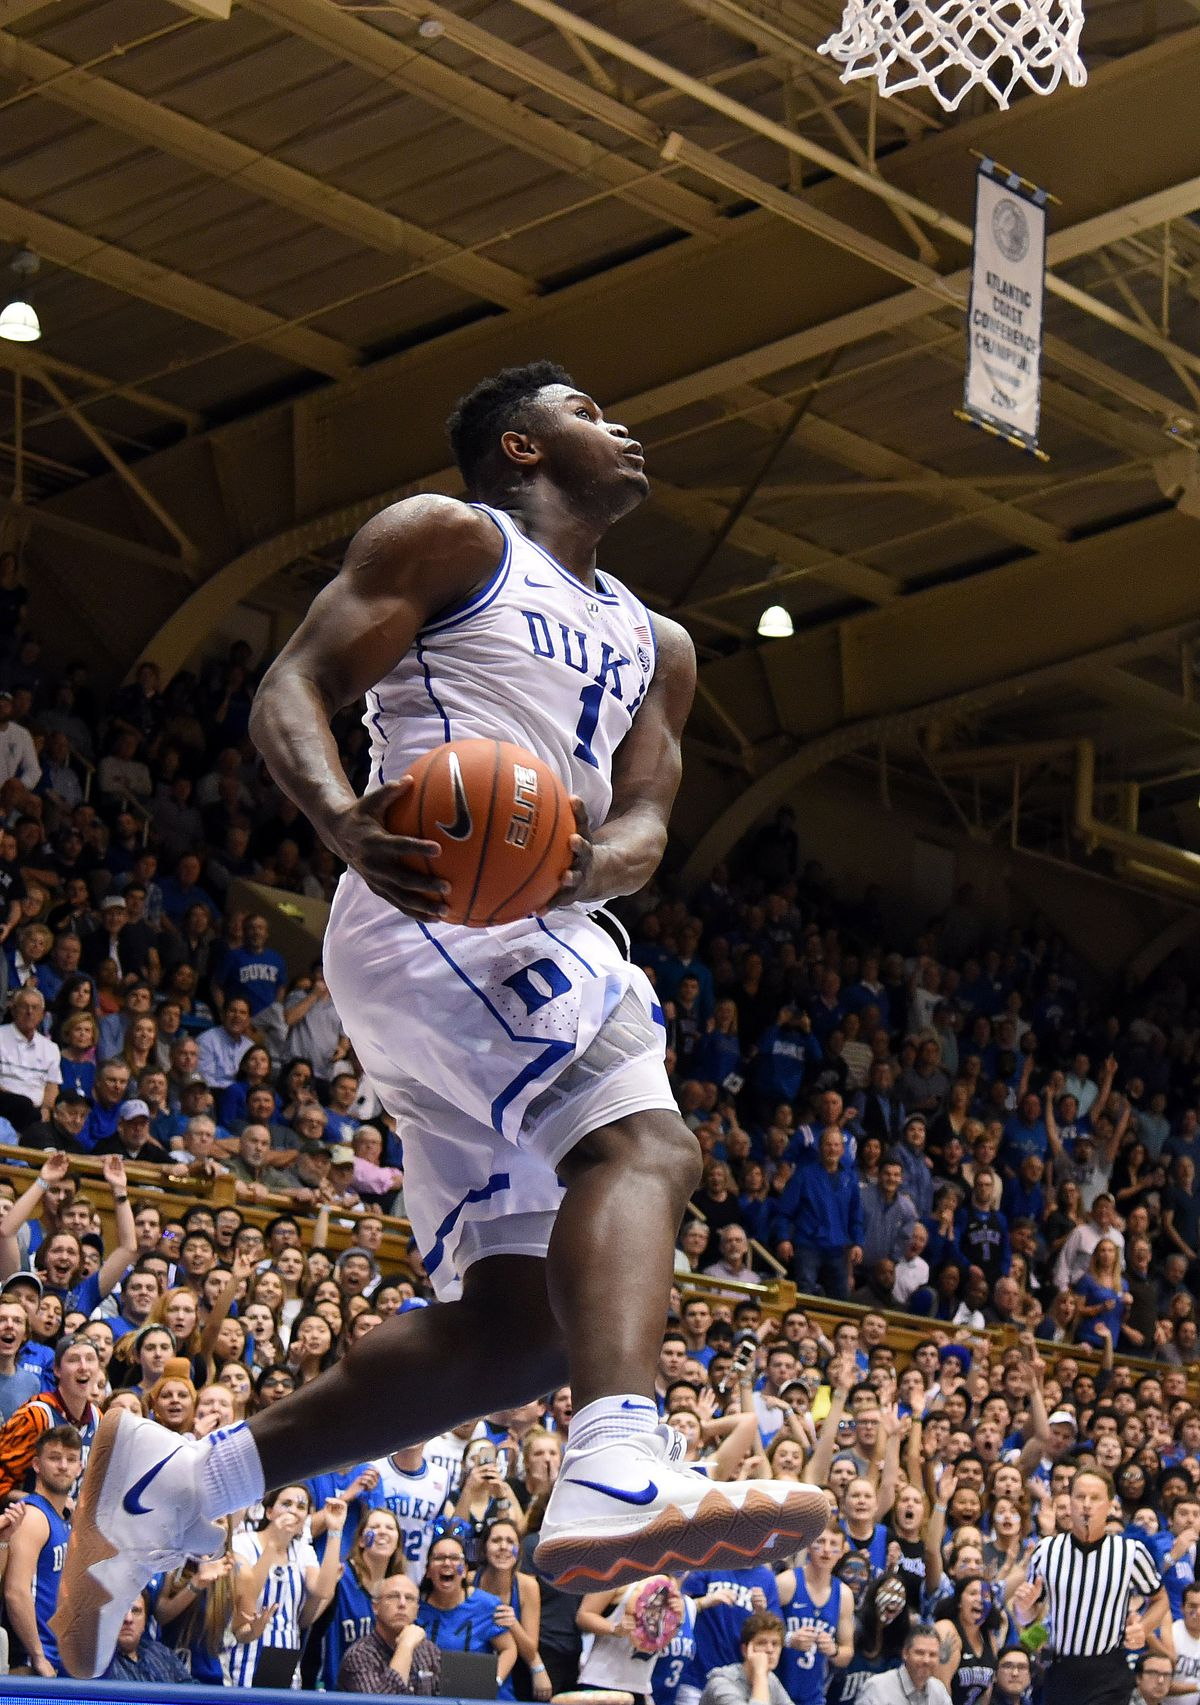 Zion Williamson S Shoe 5 Questions About The Nike Line That